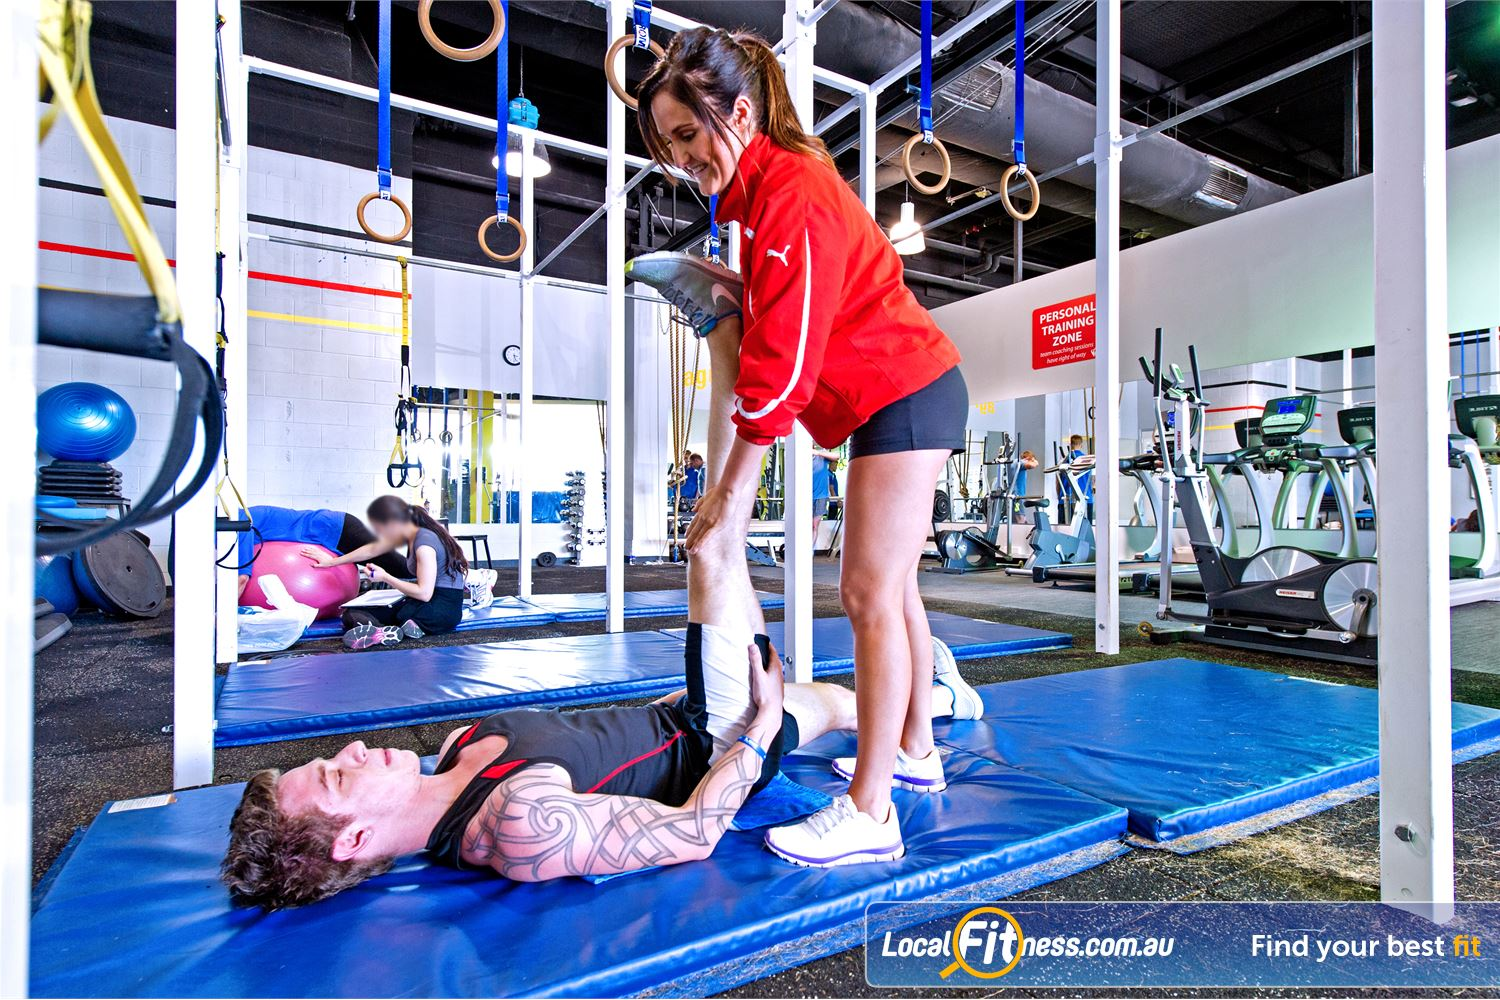 Vibe Health Clubs Near Huntingwood Fully equipped with fit balls, medicine balls, stretching mats and more.